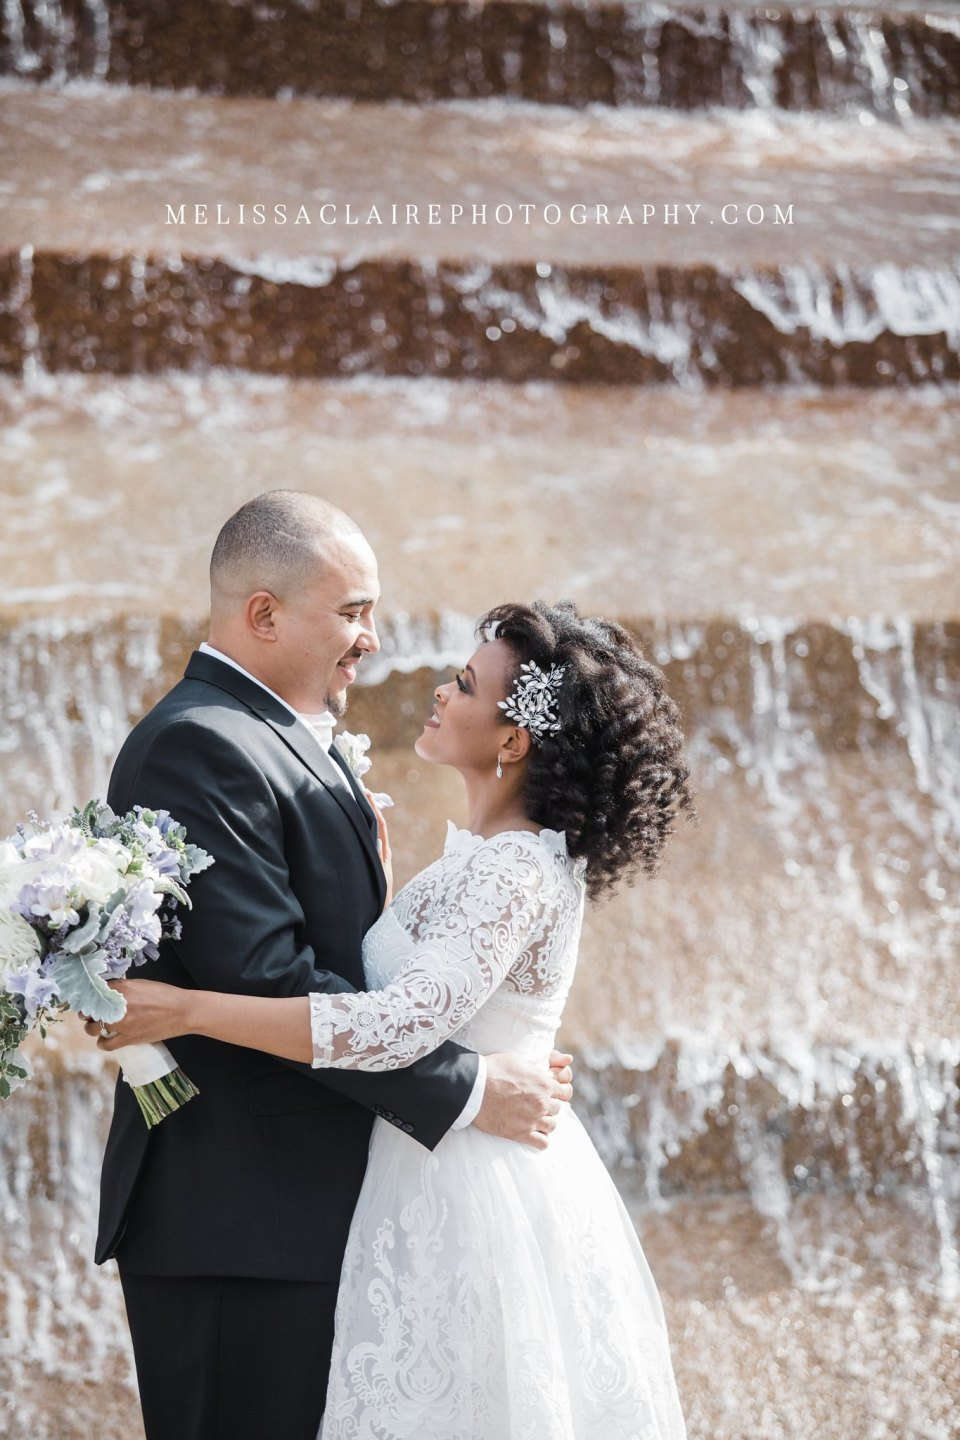 Tarrant County Courthouse Wedding